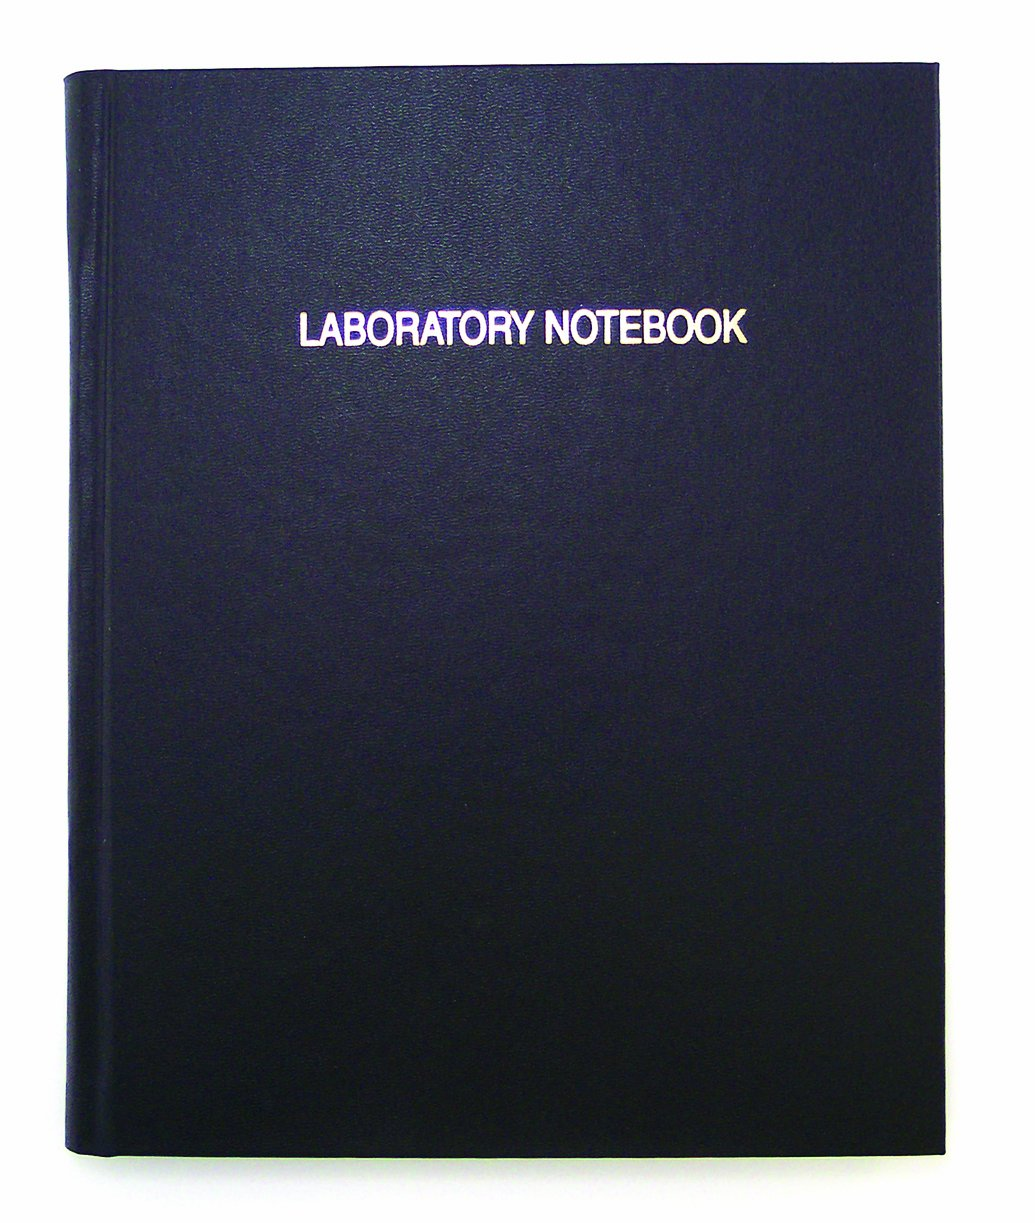 Thomas TSCILIRPE120LKG Grid Laboratory Notebook, Black Imitation Leather Cover, 120 Pages, 11'' Length x 8-7/8'' Width (Case of 10)